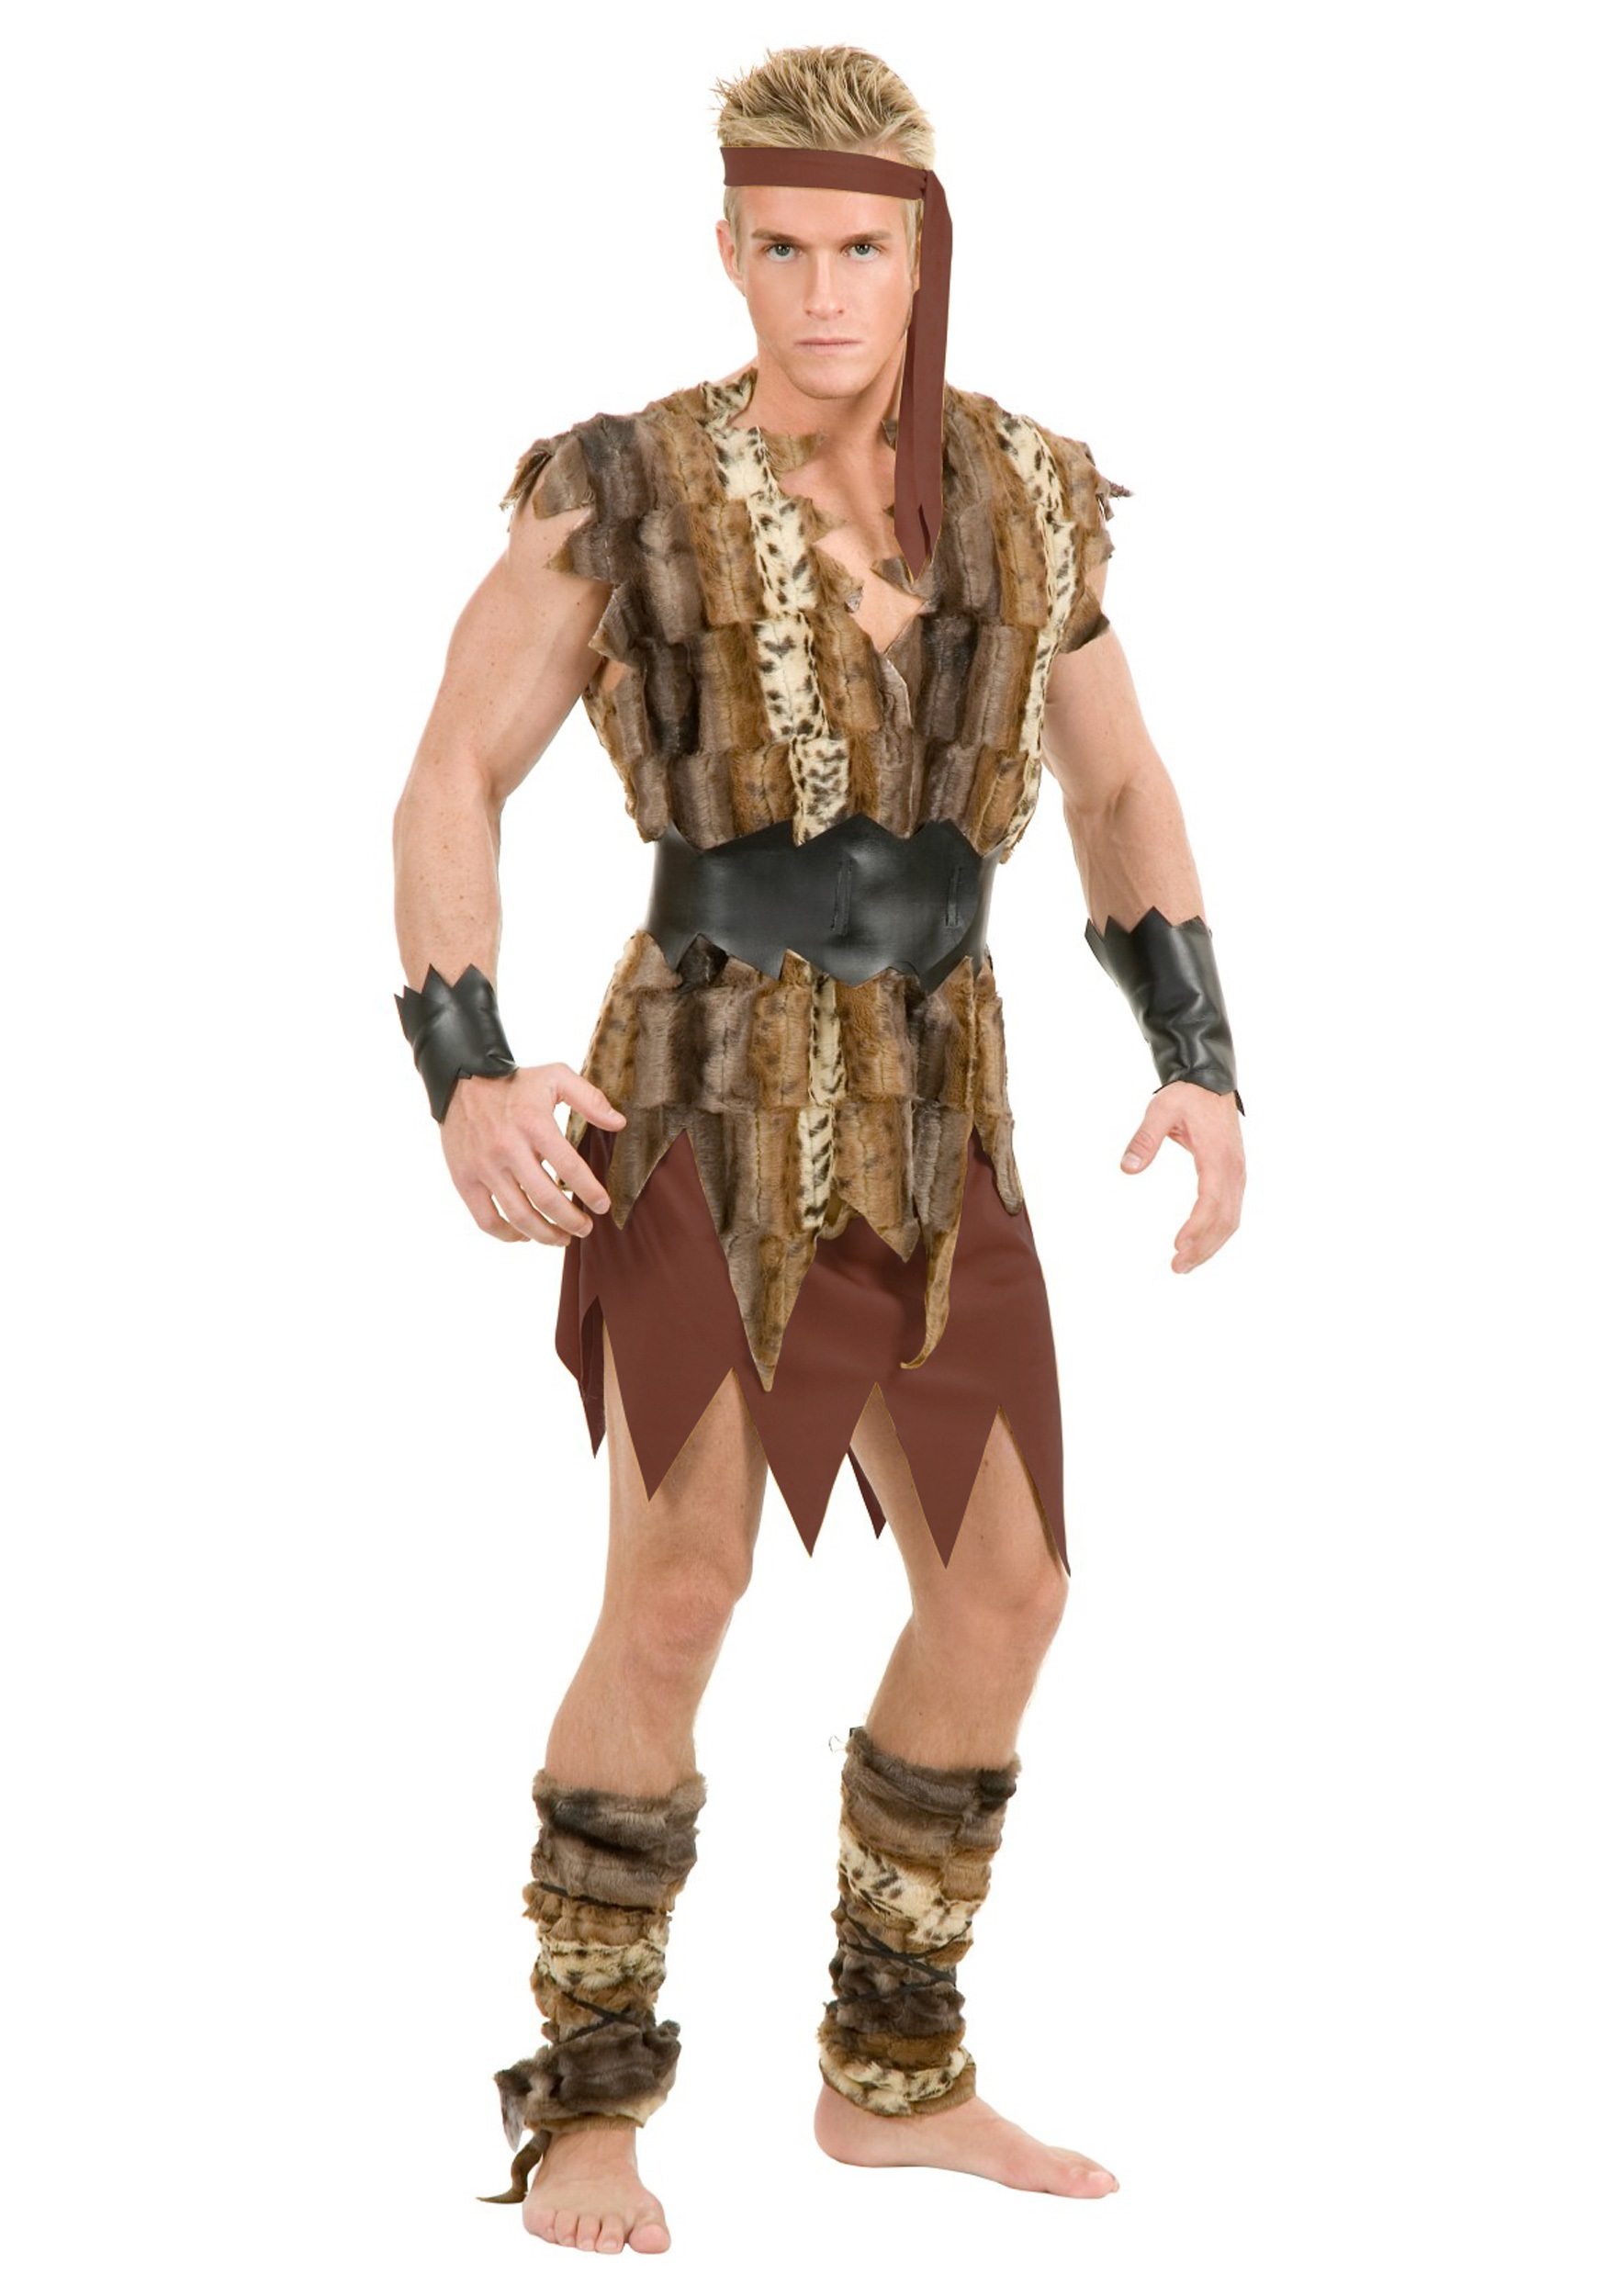 INOpets.com Anything for Pets Parents & Their Pets Cool Caveman Costume